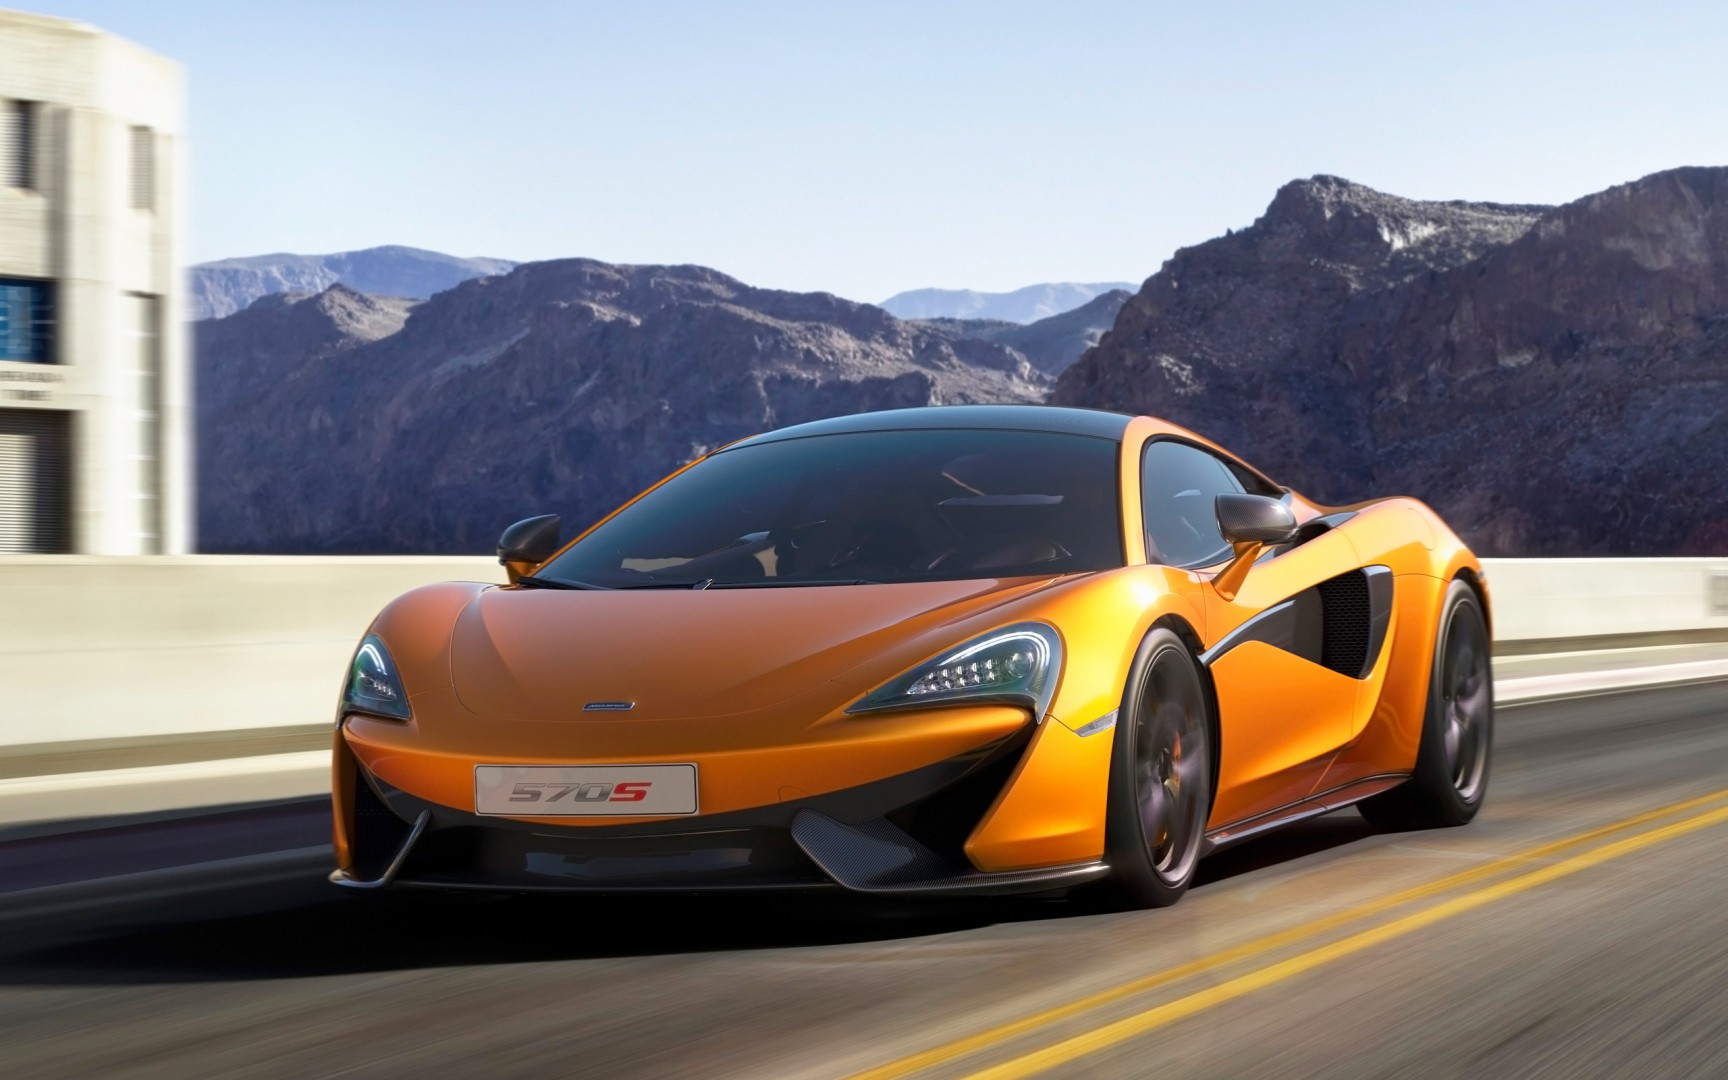 2015 McLaren 570S Car HD Wallpaper FullHDWpp   Full HD 1728x1080